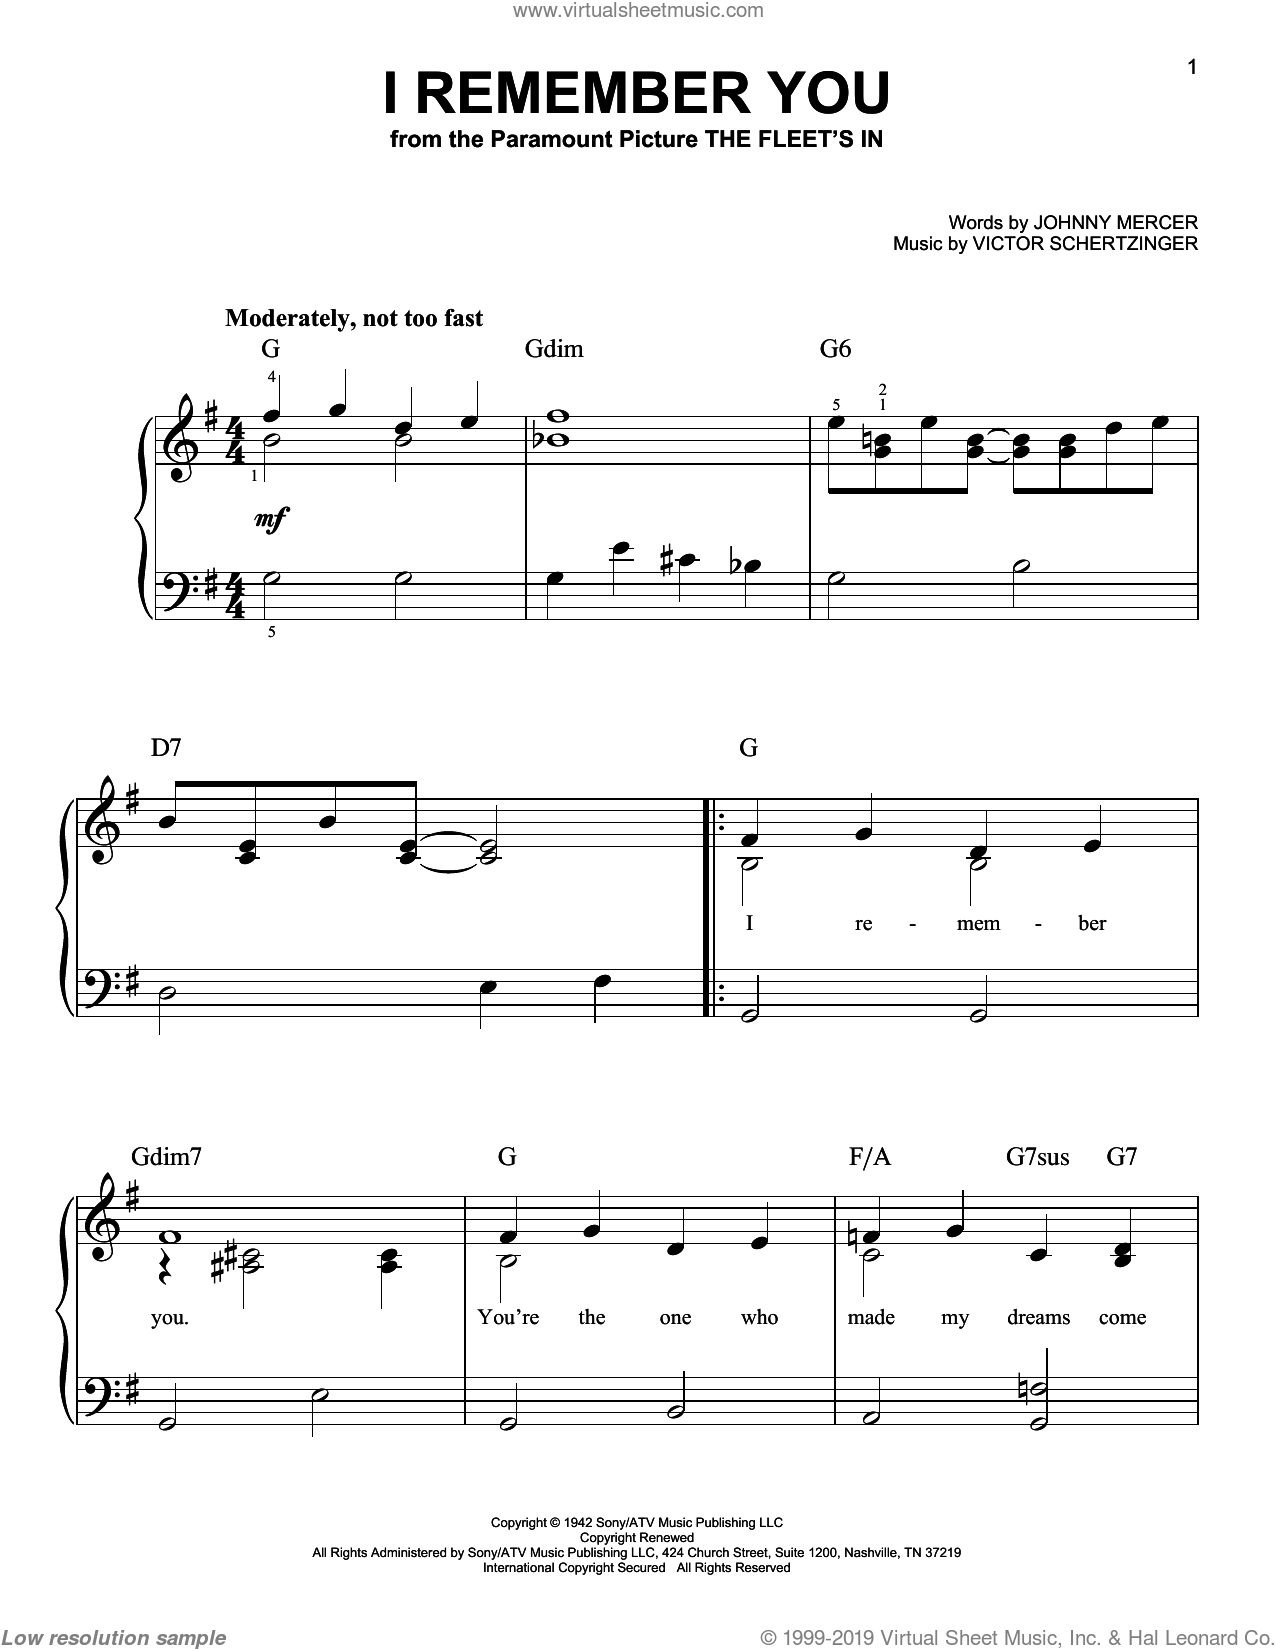 I Remember You sheet music for piano solo (chords) by Victor Schertzinger